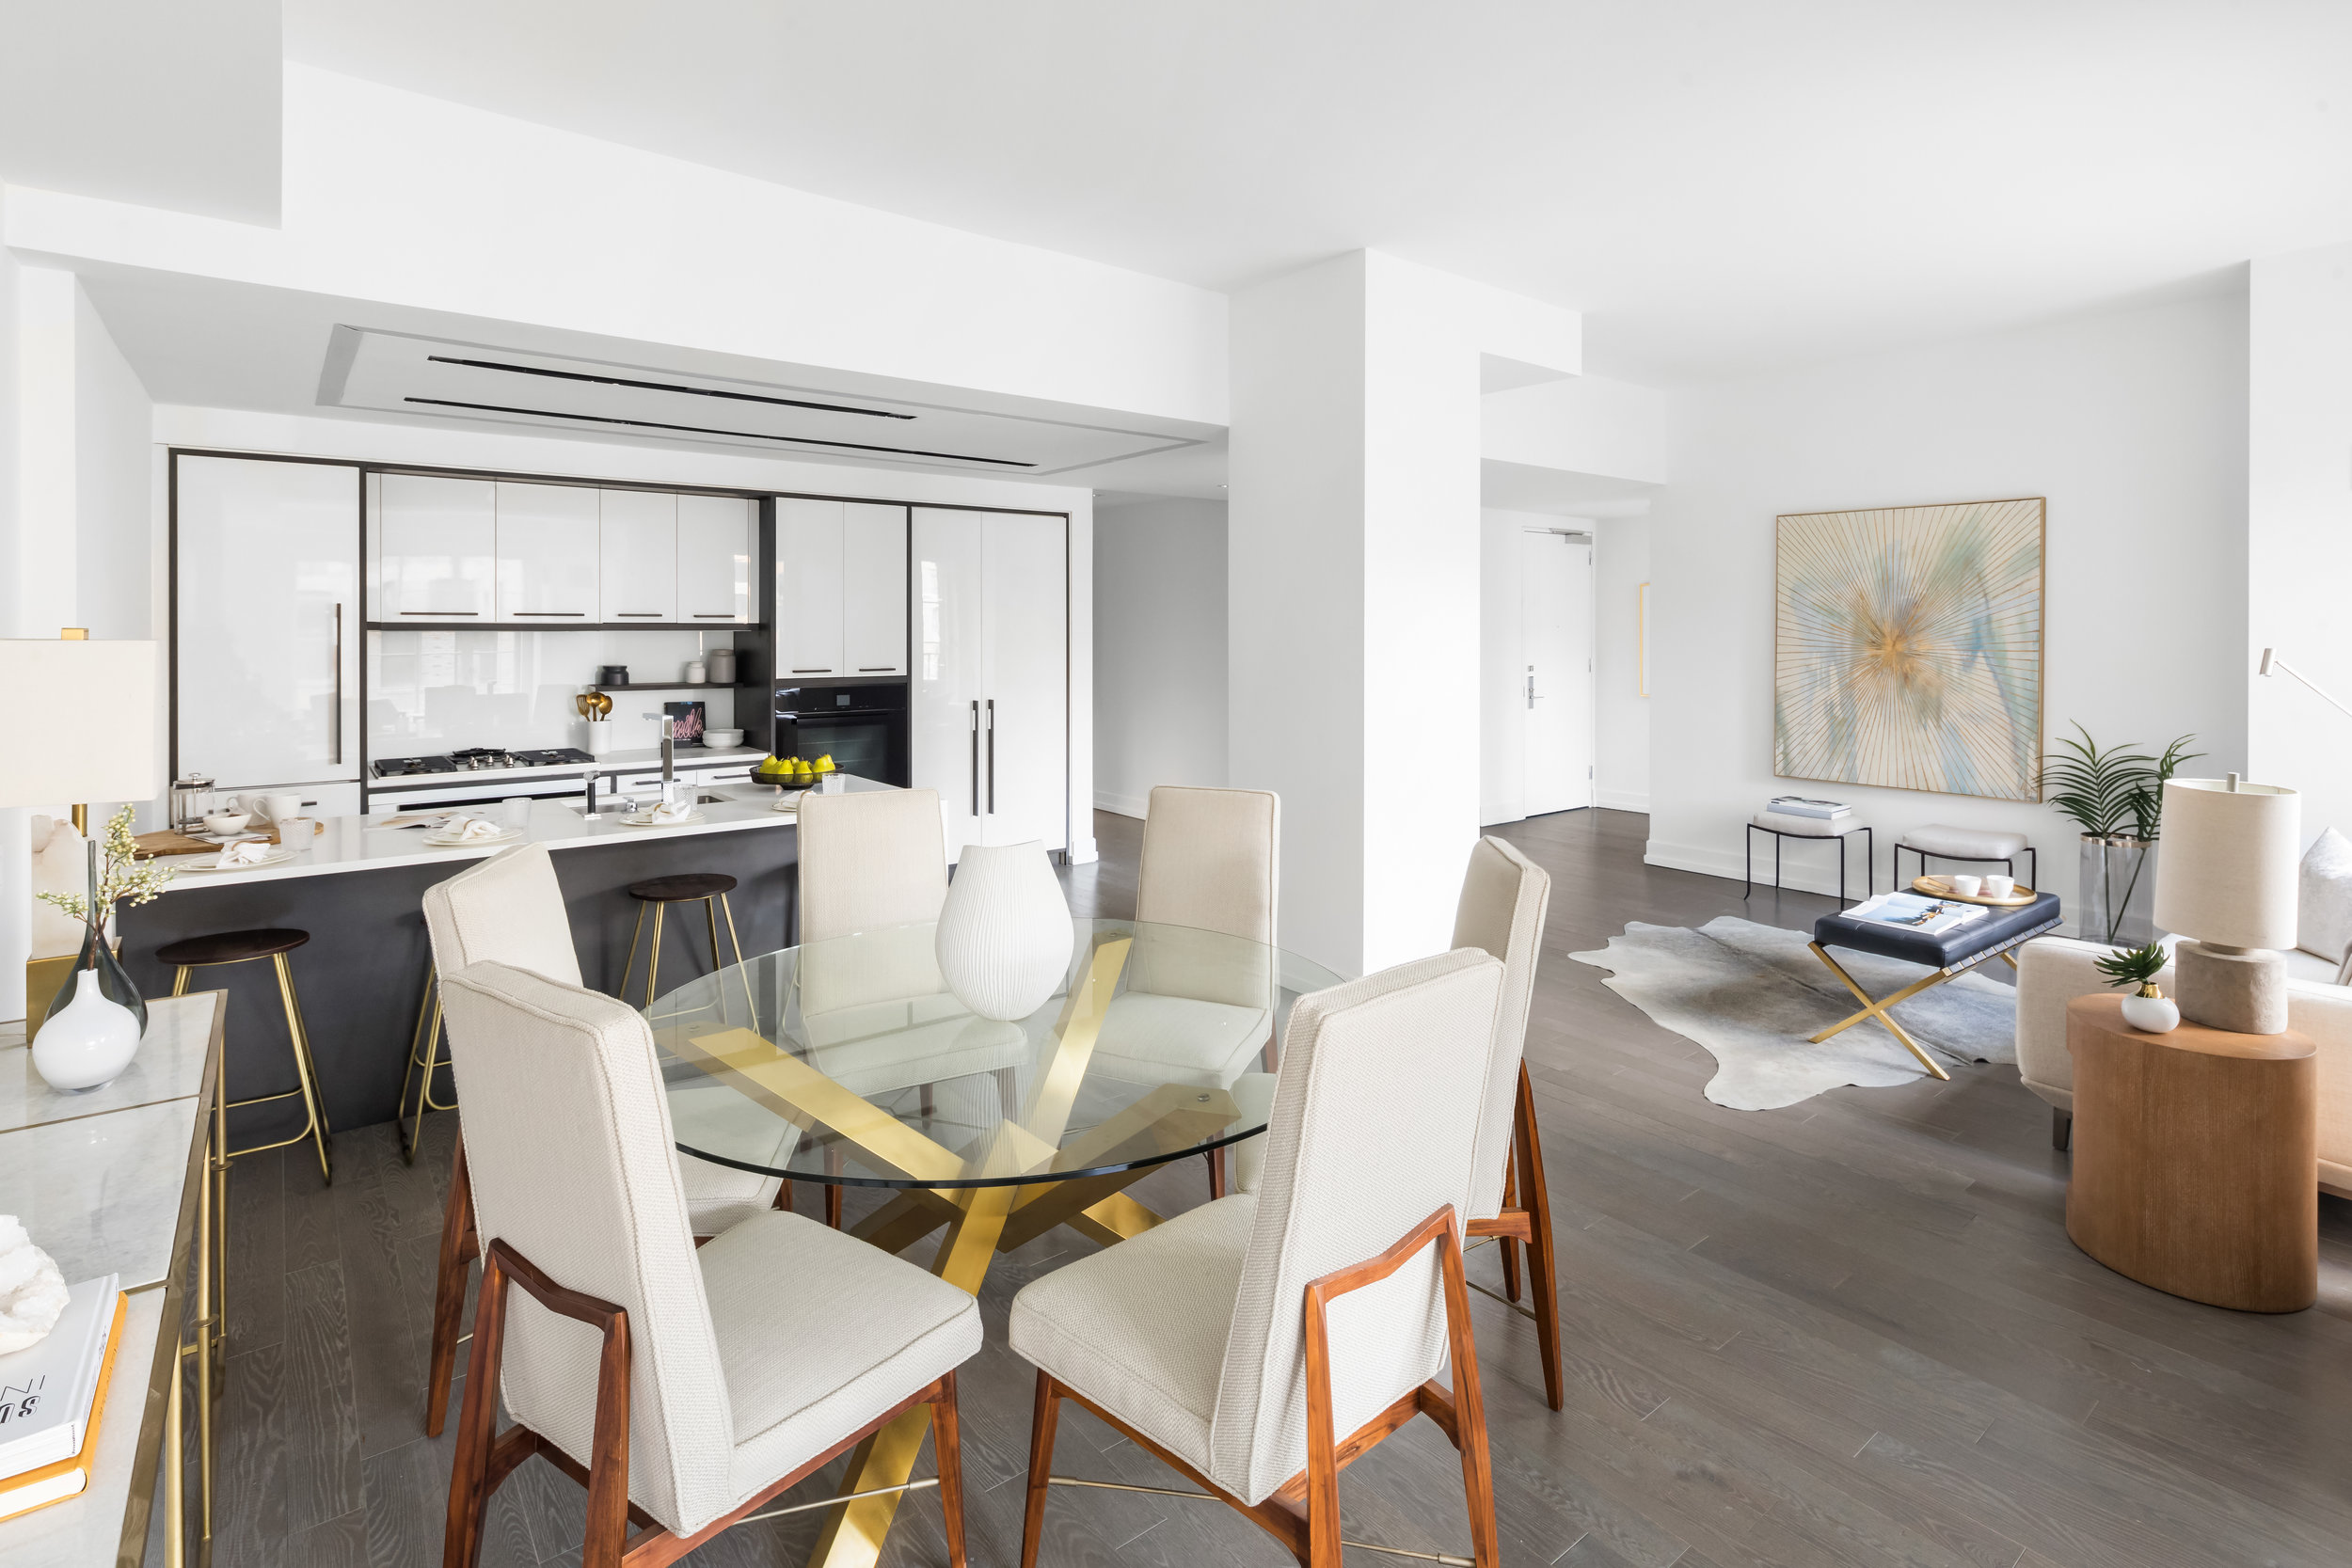 Extell Reveals New Model Residence With Terrace At 70 Charlton In SoHo